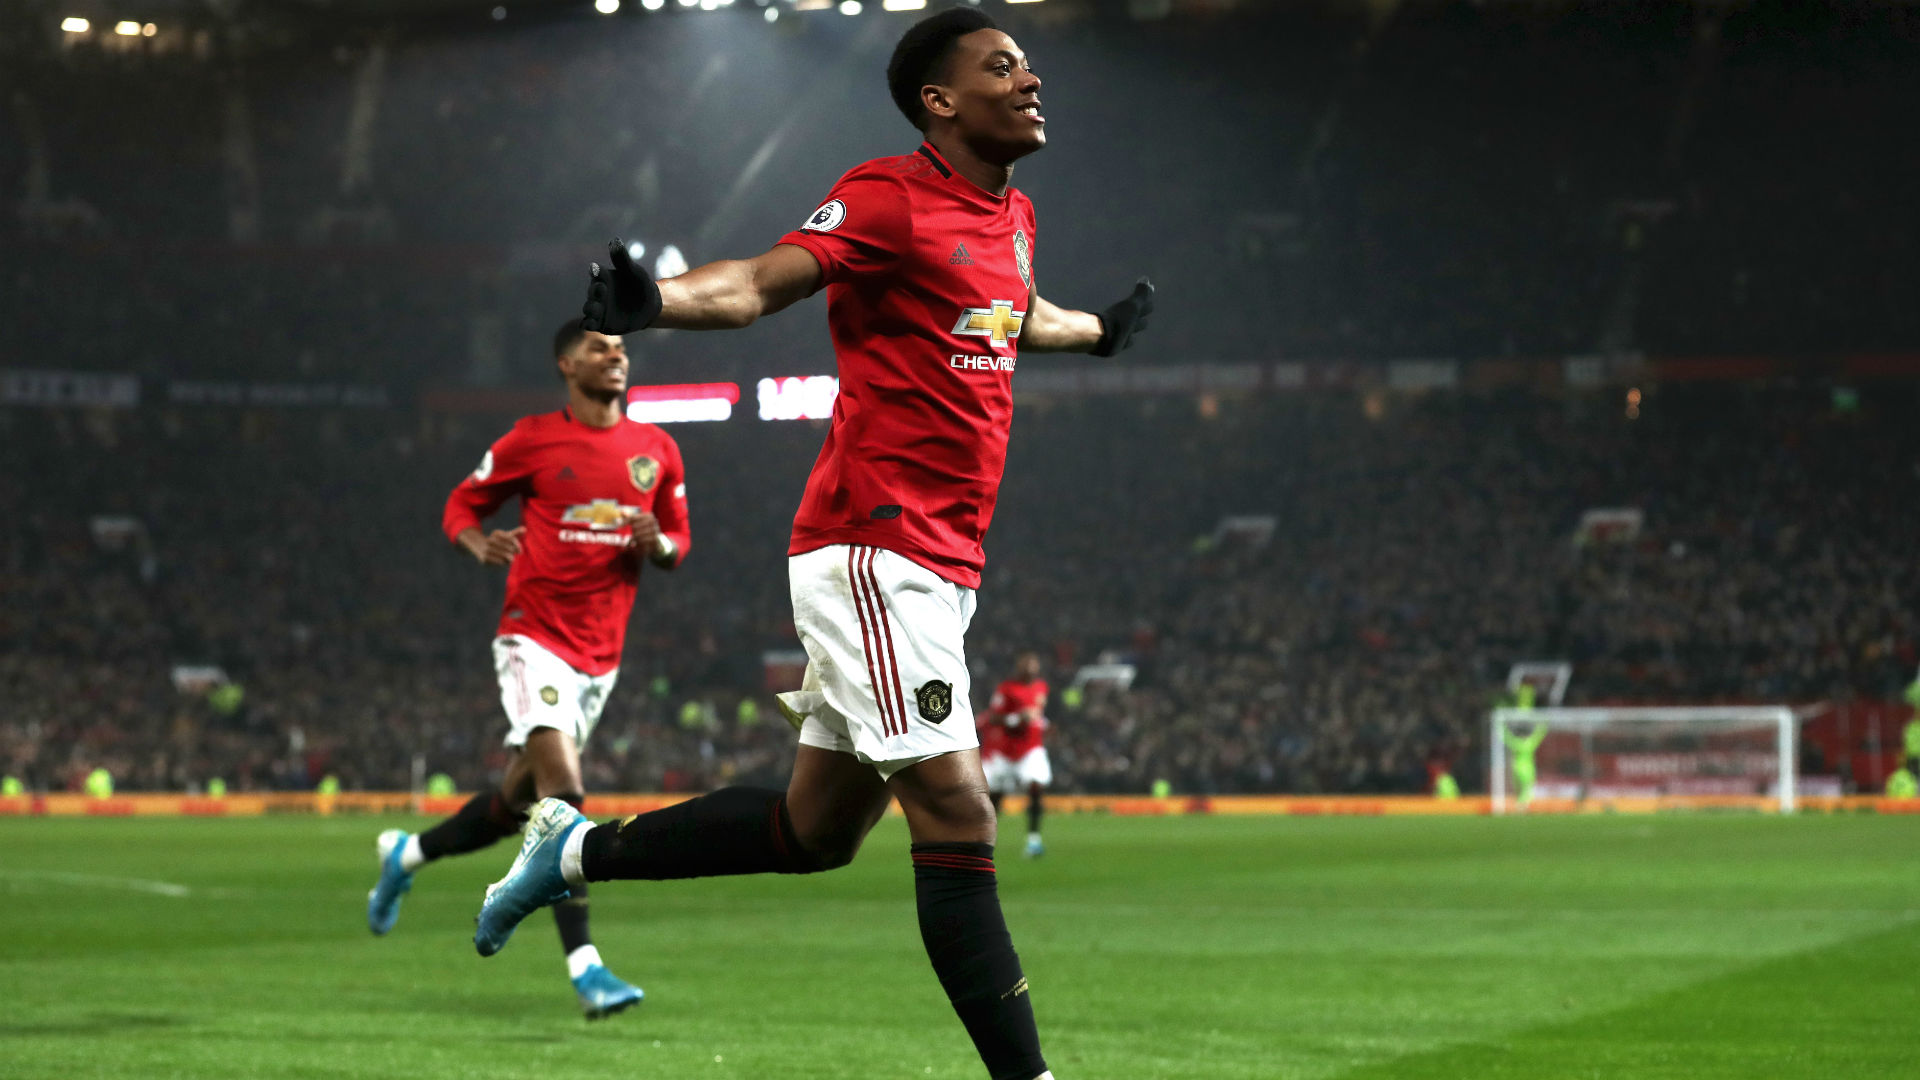 Manchester United 4-1 Newcastle United: Martial helps Red Devils get in the festive spirit